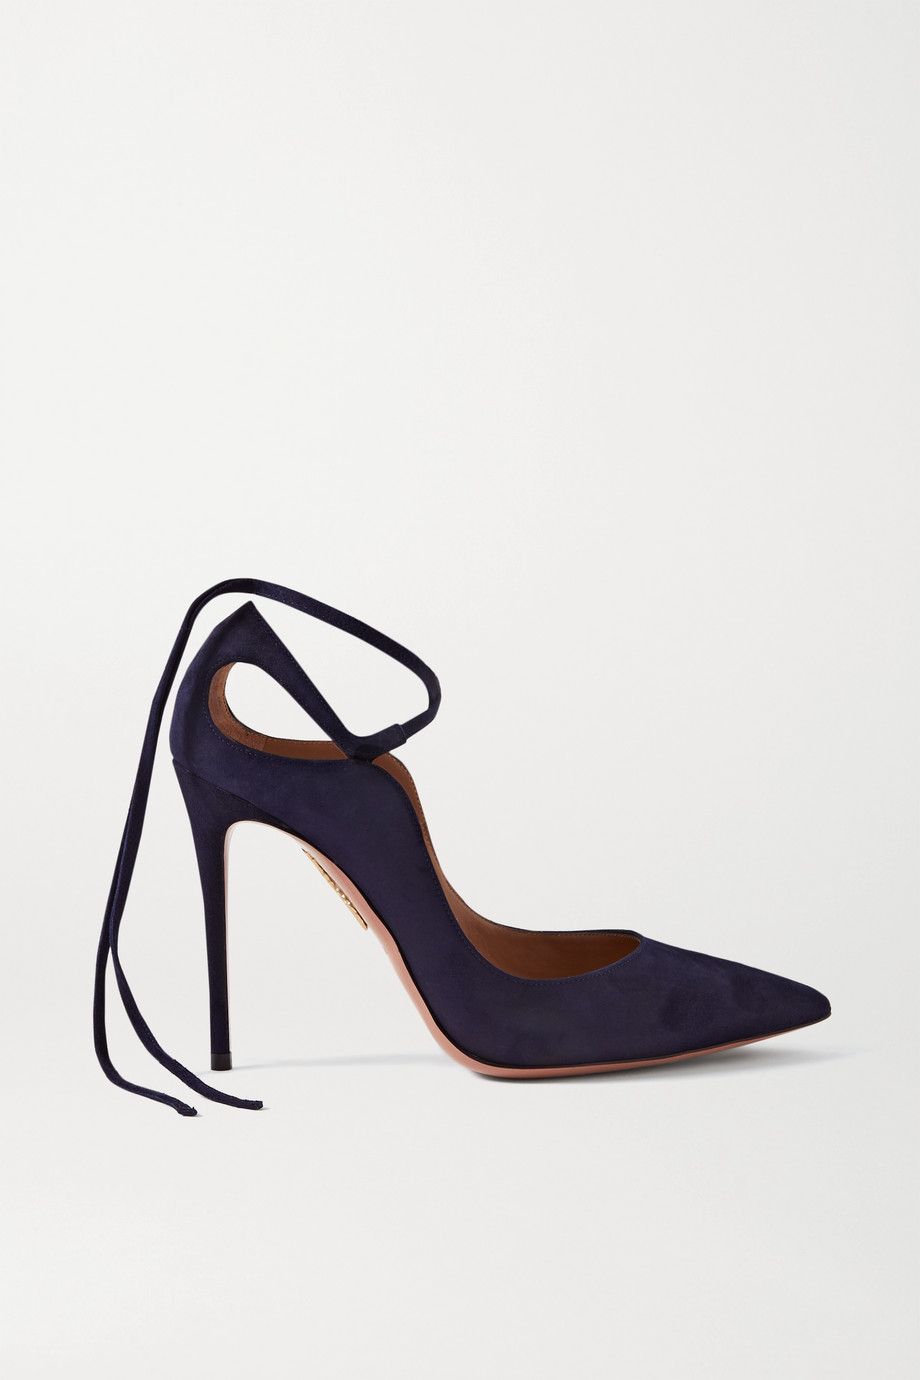 Aquazzura Aria 105 suede pumps